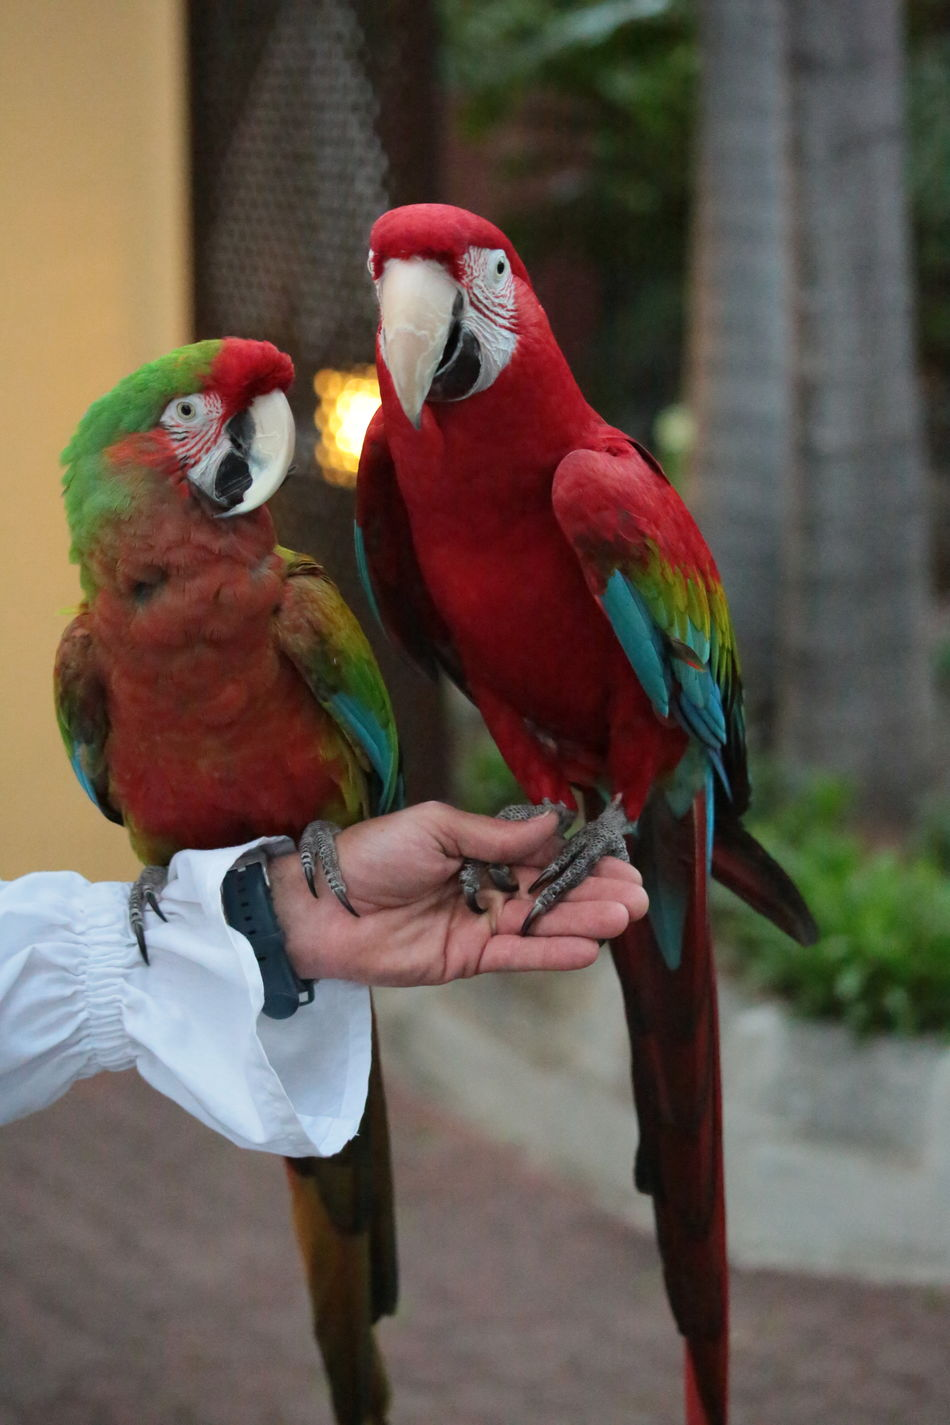 Frends Parrots Parrot Bird Red Animal Multi Colored Macaw Animal Wildlife Pets Close-up Birds Of EyeEm  Birds Of A Feather Textures And Colors Eyem Best Shots 3XSPUnity Beautiful Nature Nature Beauty In Nature Cloursplash Pair Of Birds Macaw Parrot Macaw Red